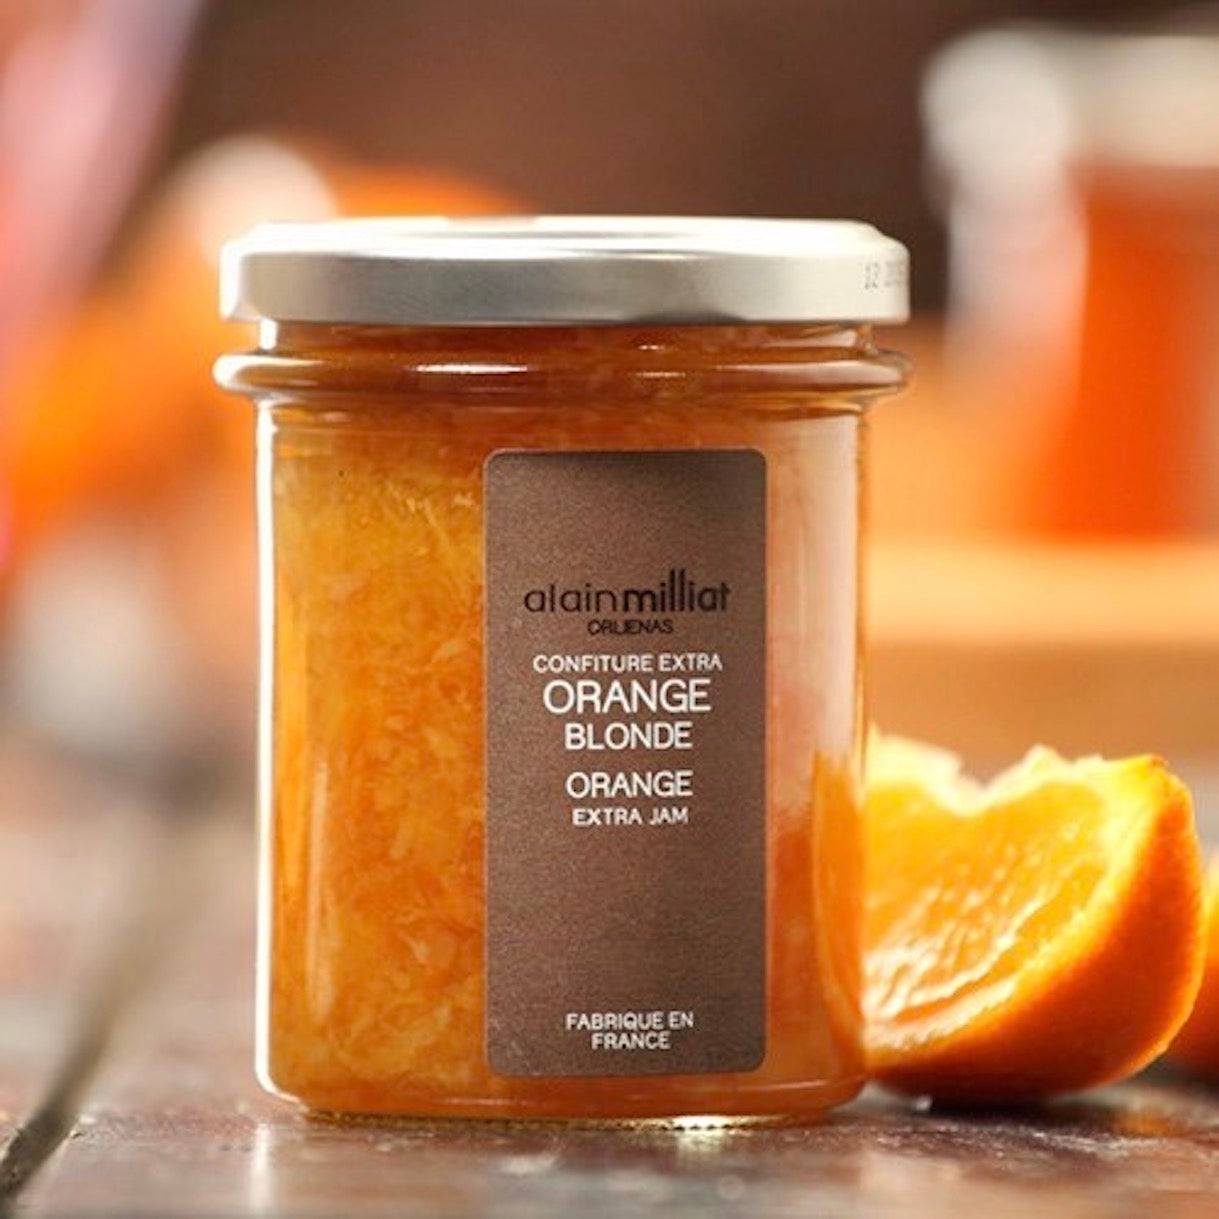 Orange-jam-alain-milliat-online-delivery-grocery-thenewgrocer